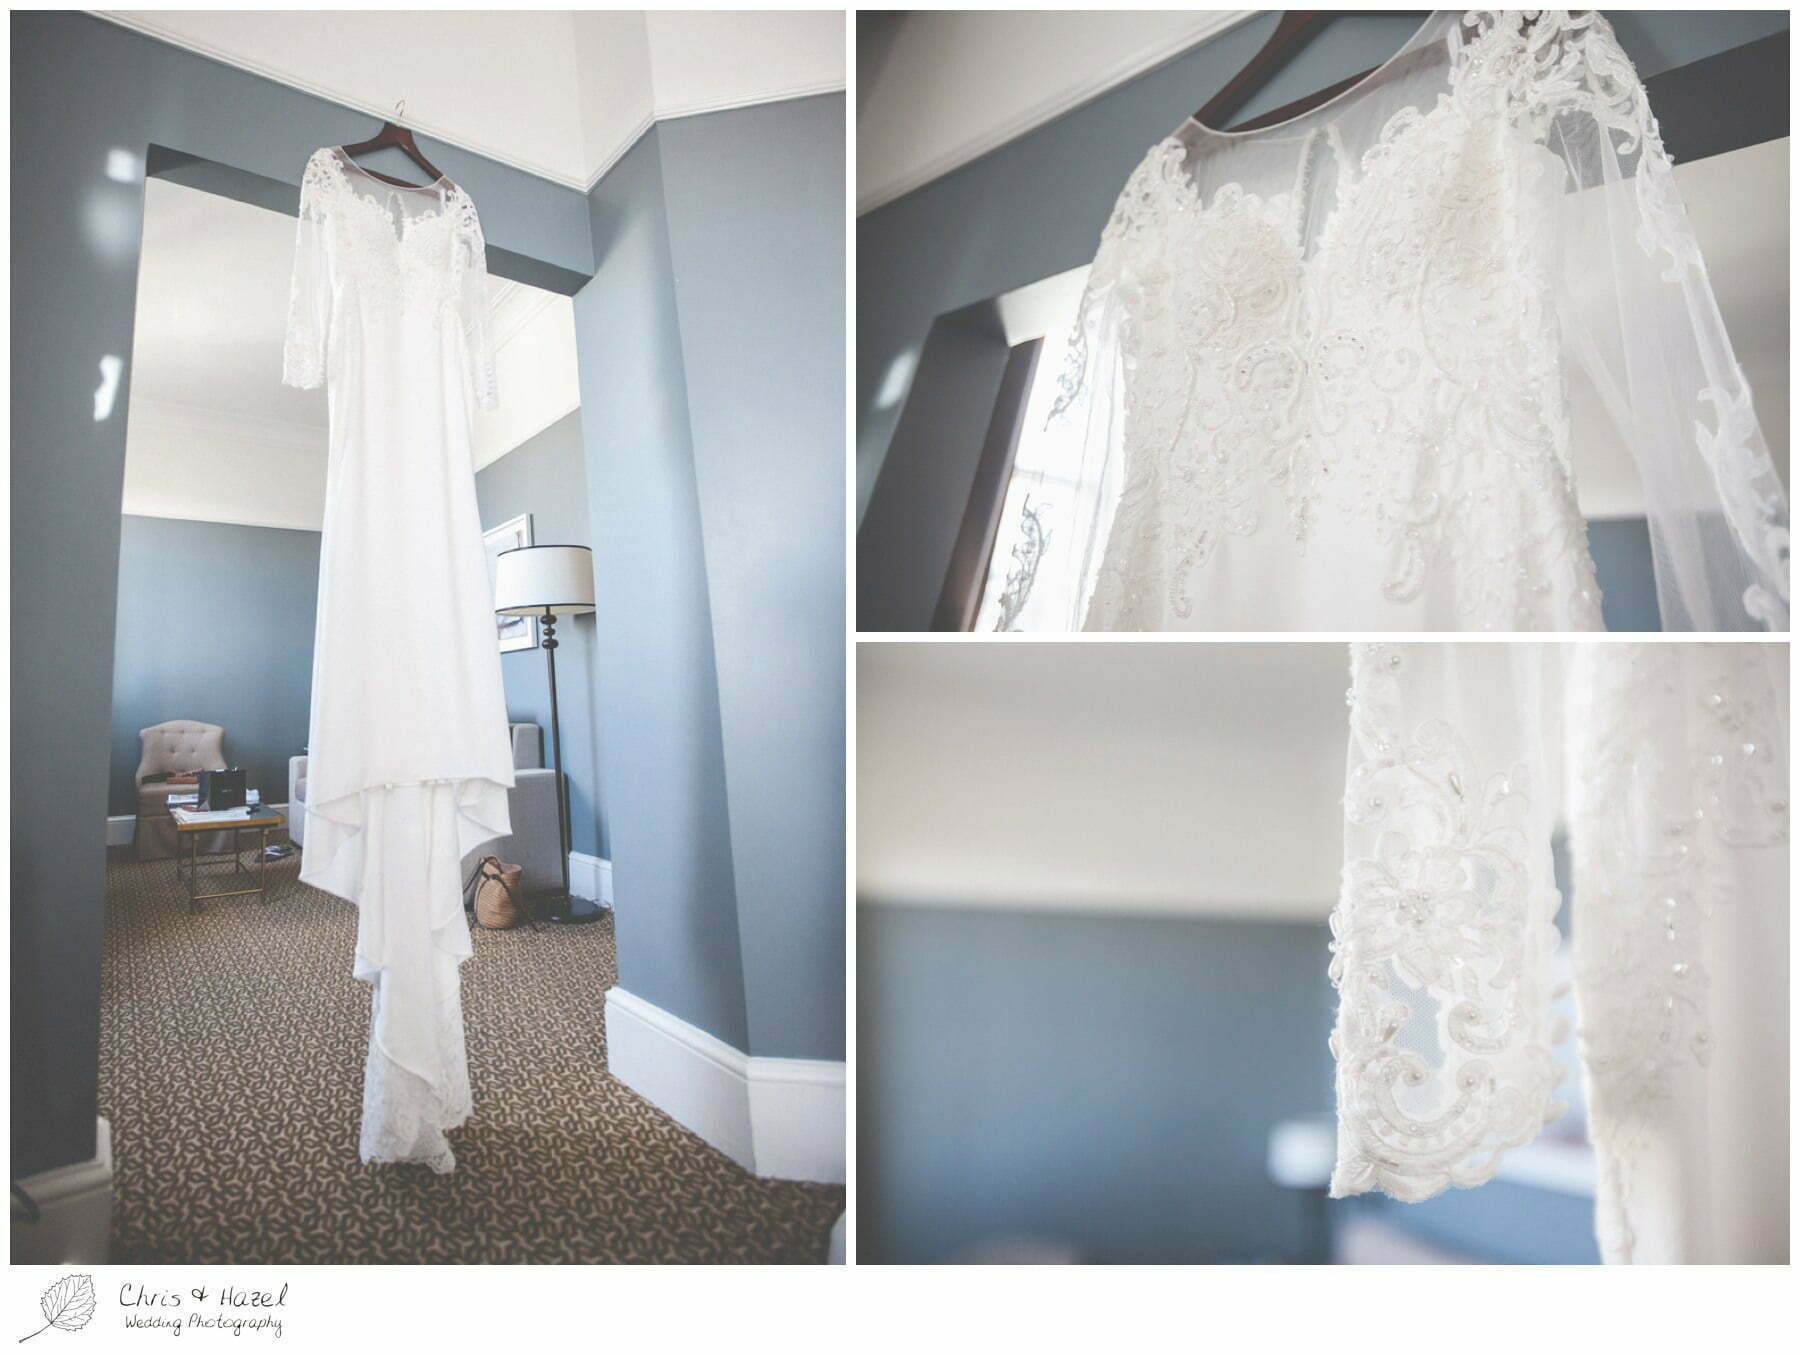 Wedding Dress hanging up, Wedding preparations, The Gainsborough Bath Spa hotel, Gainsborough Hotel Bath, documentary wedding photography, Chris and Hazel Wedding Photography Bath, Andy Frost Sian Upson